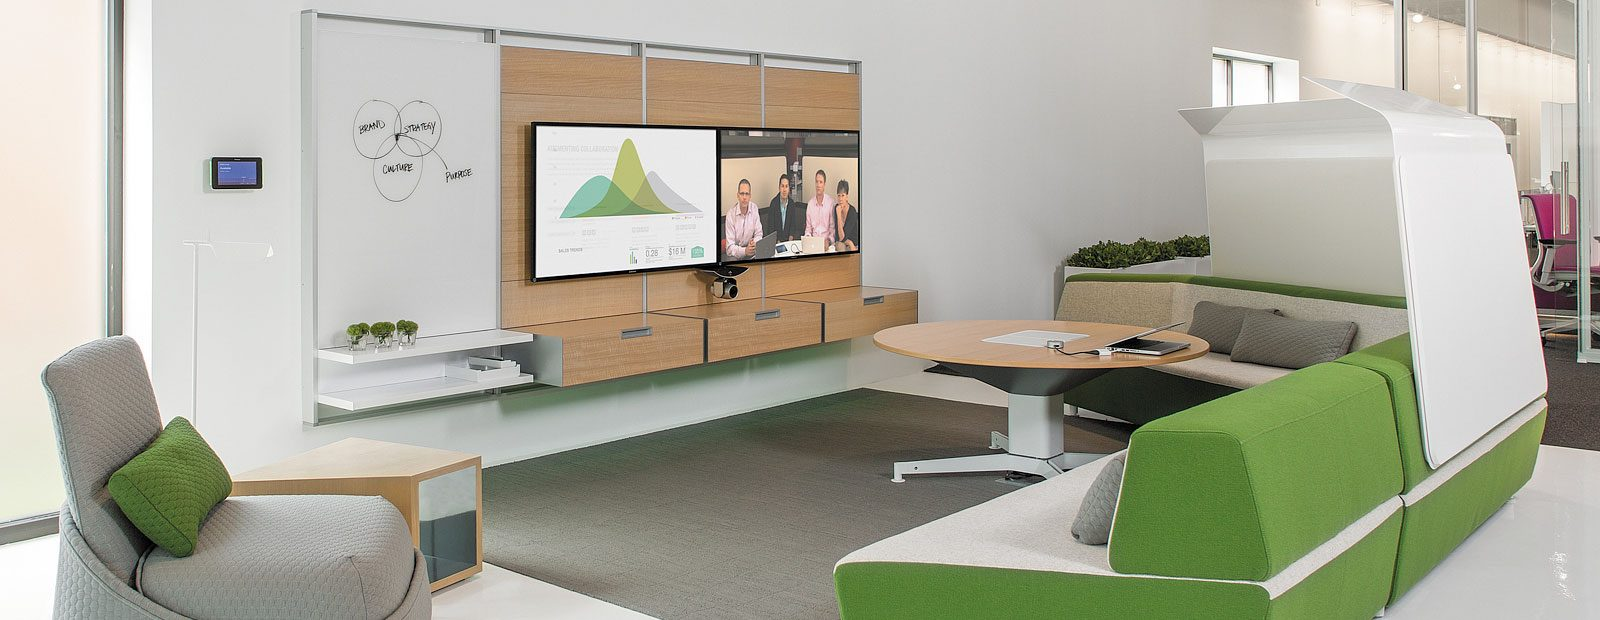 Training Spaces Workspace gallery image